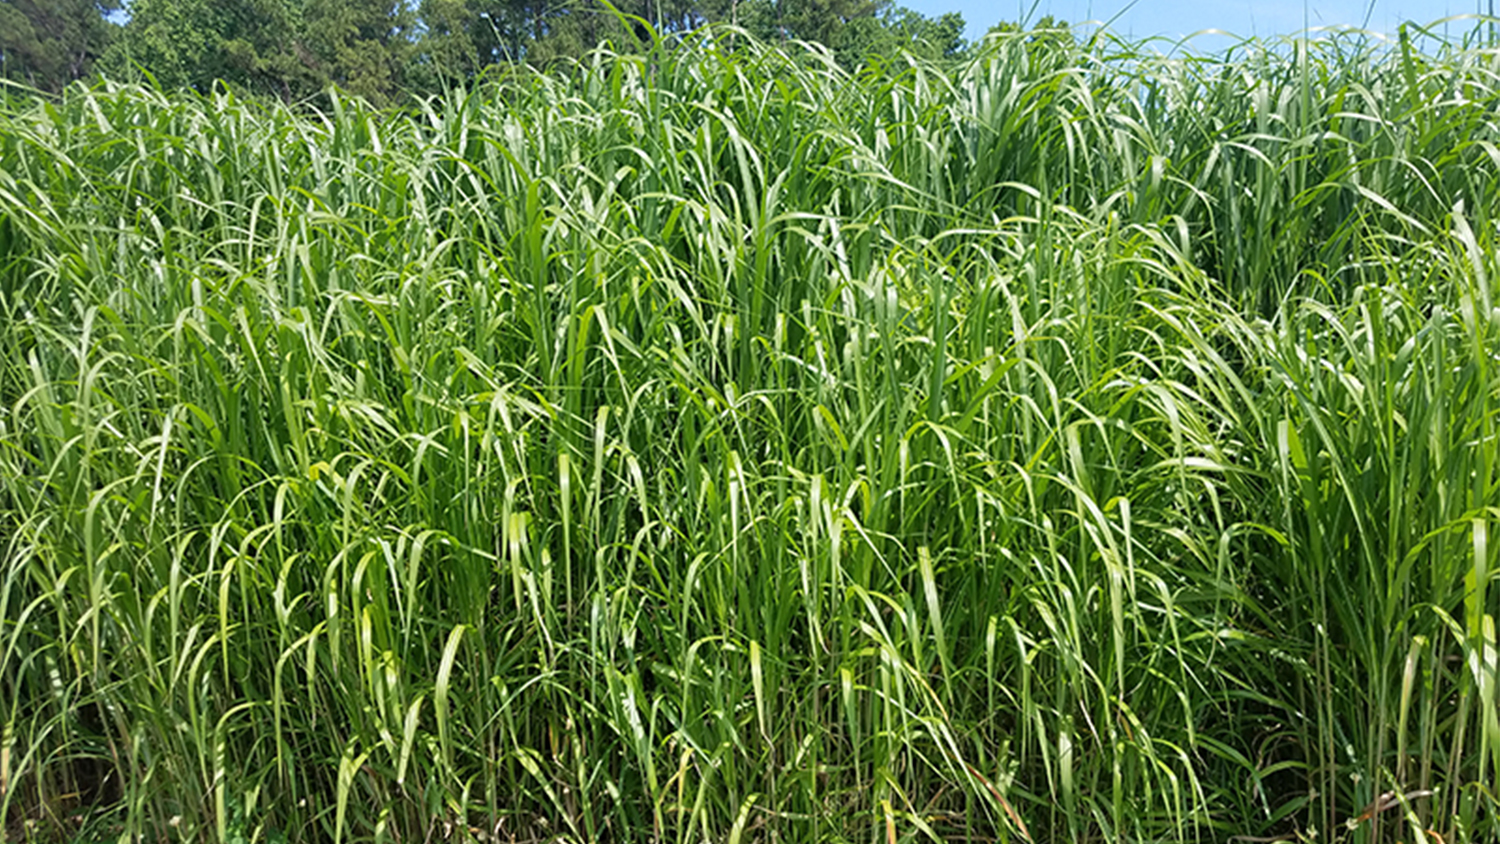 giant miscanthus grass growing in a field